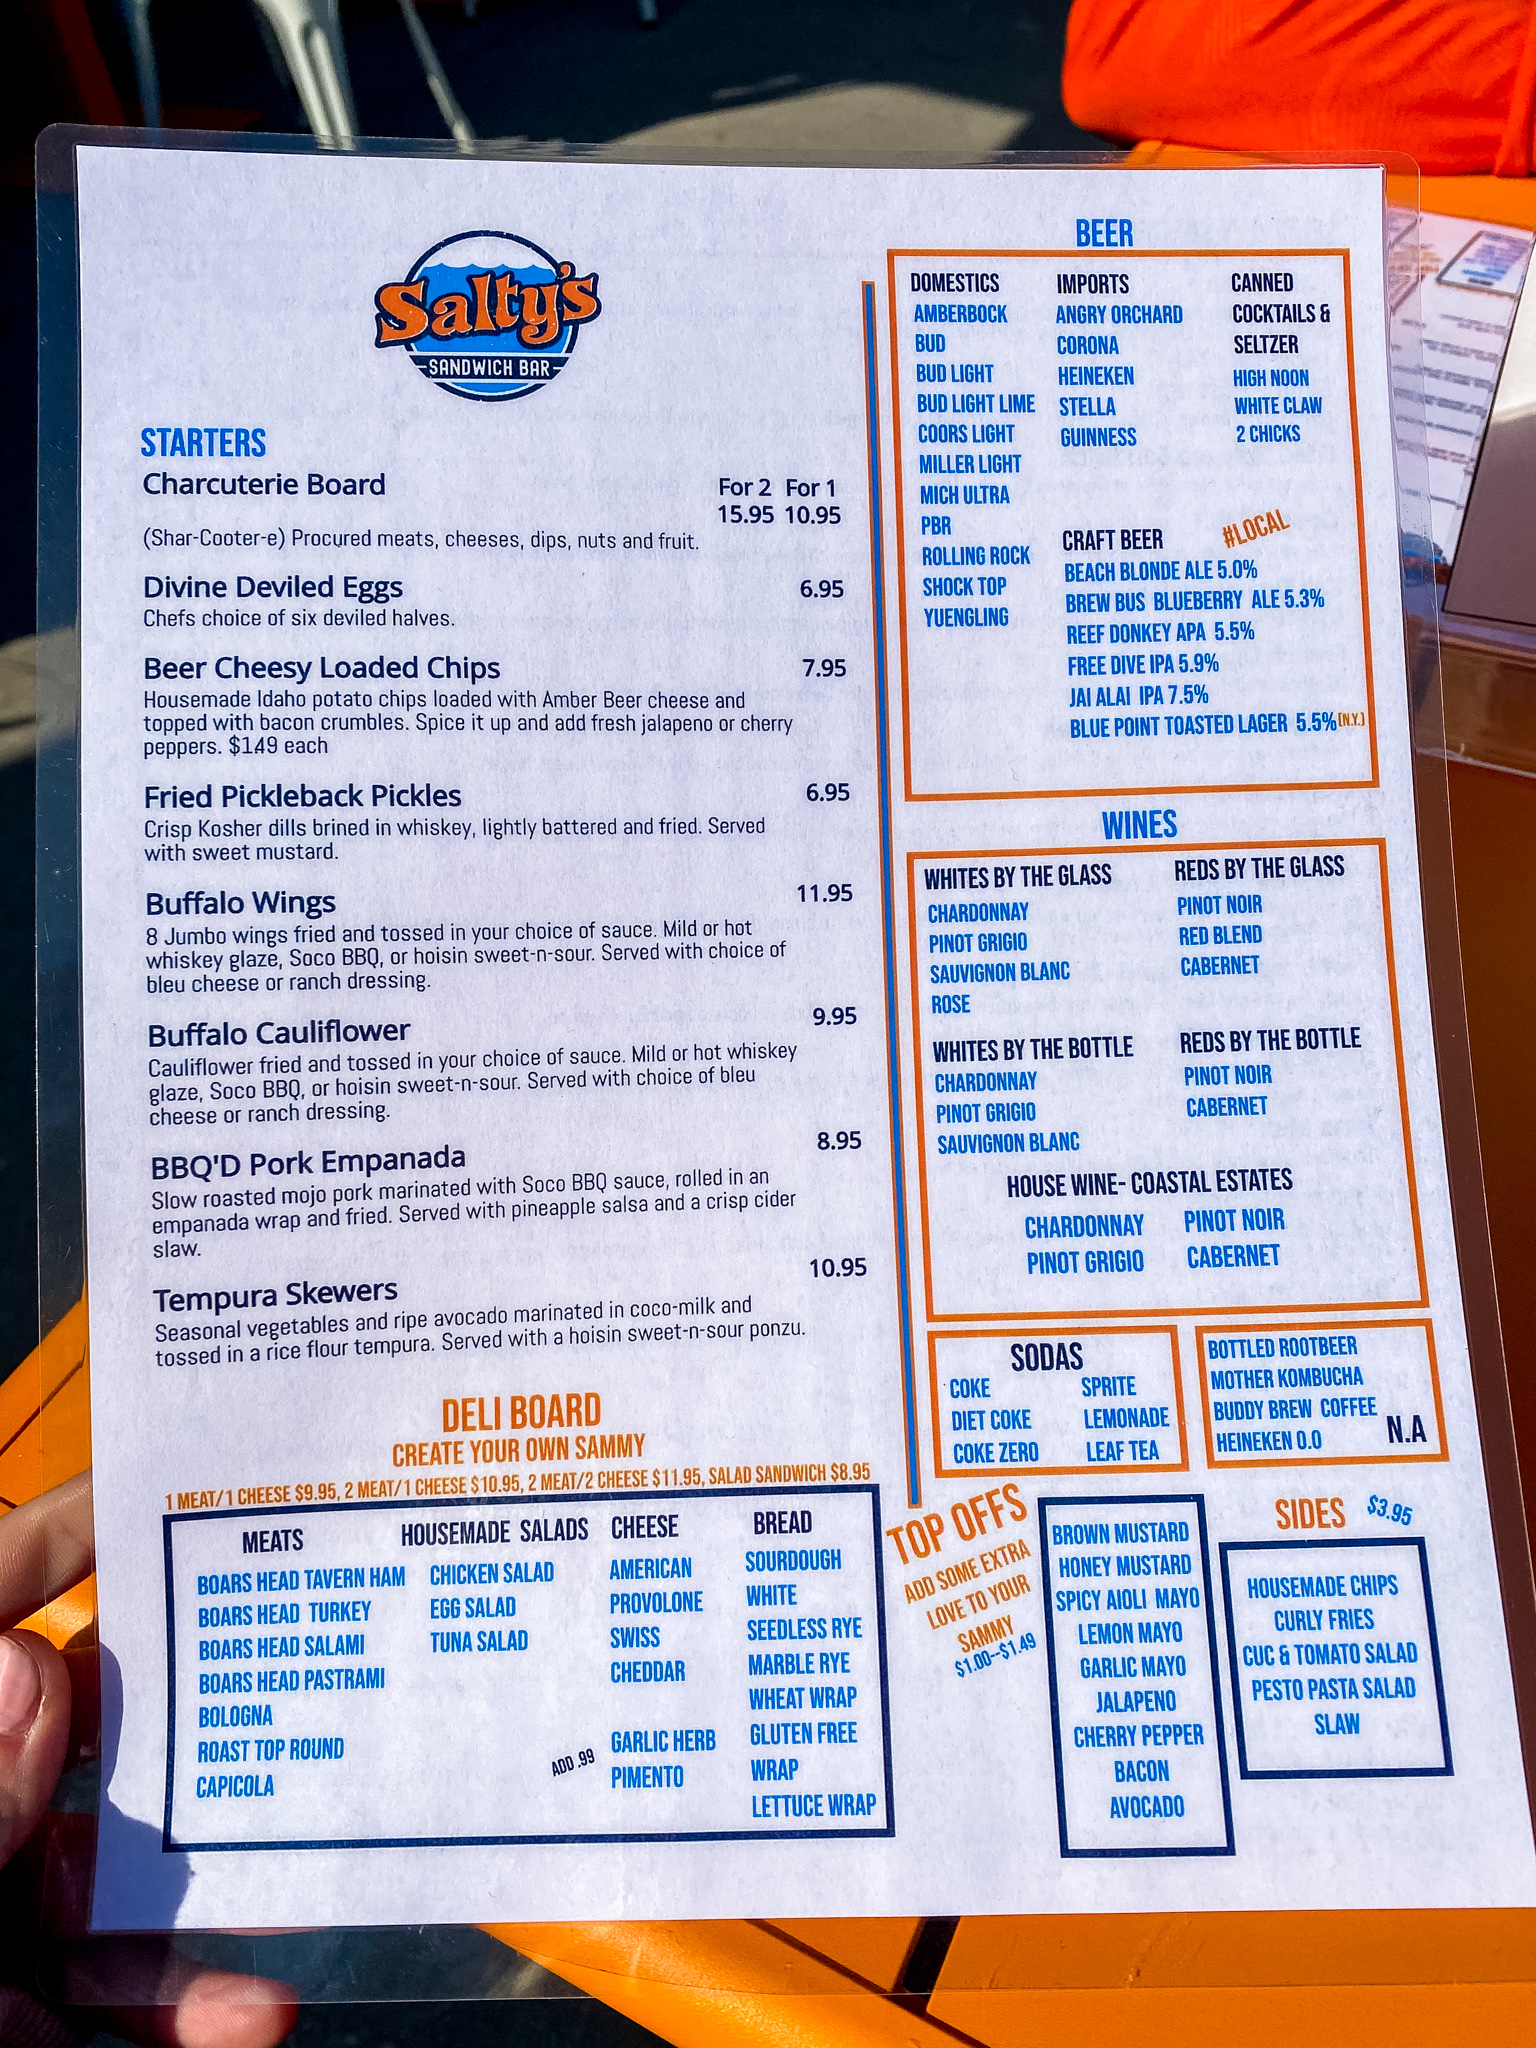 Salty's Sandwich Bar Menu